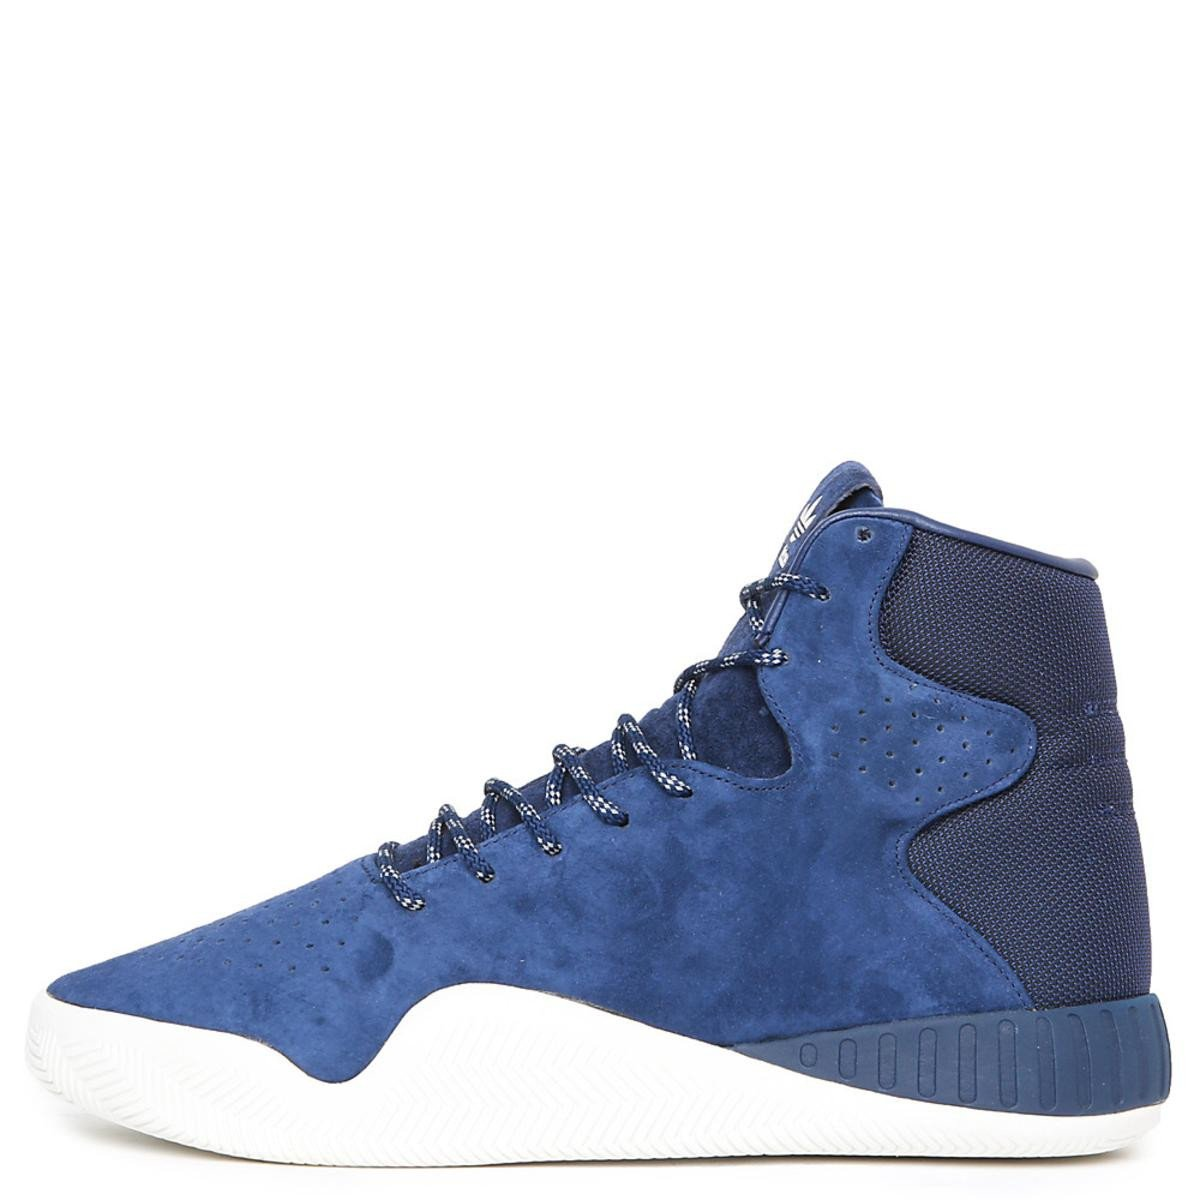 Men's Tubular Instinct Athletic Lifestyle